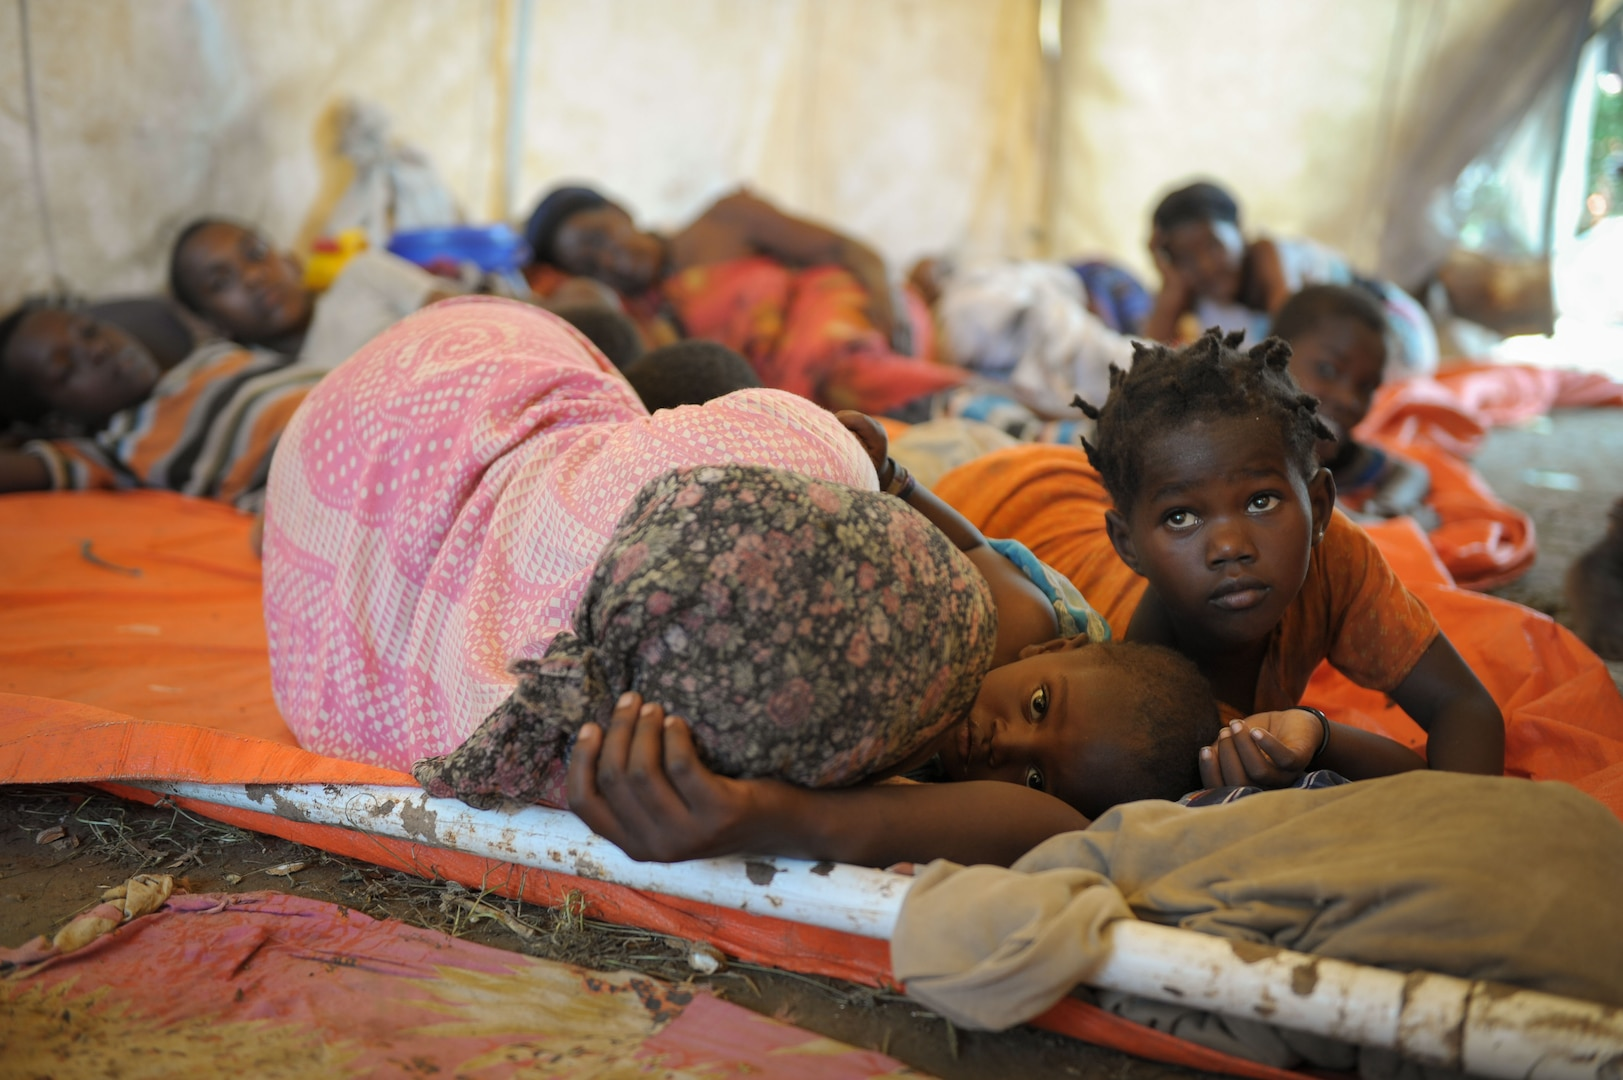 Women and children sleep in a makeshift hospital erected at an AMISOM military camp to help those affected by recent flooding and clan conflict near Jowhar, Somalia, on November 12. Heavy rains in Somalia, coupled with recent disputes between clans, has resulted in over four thousand IDPs seeking shelter at an AMISOM military base near the town of Jowhar, with more arriving daily. AU UN IST Photo / Tobin Jones